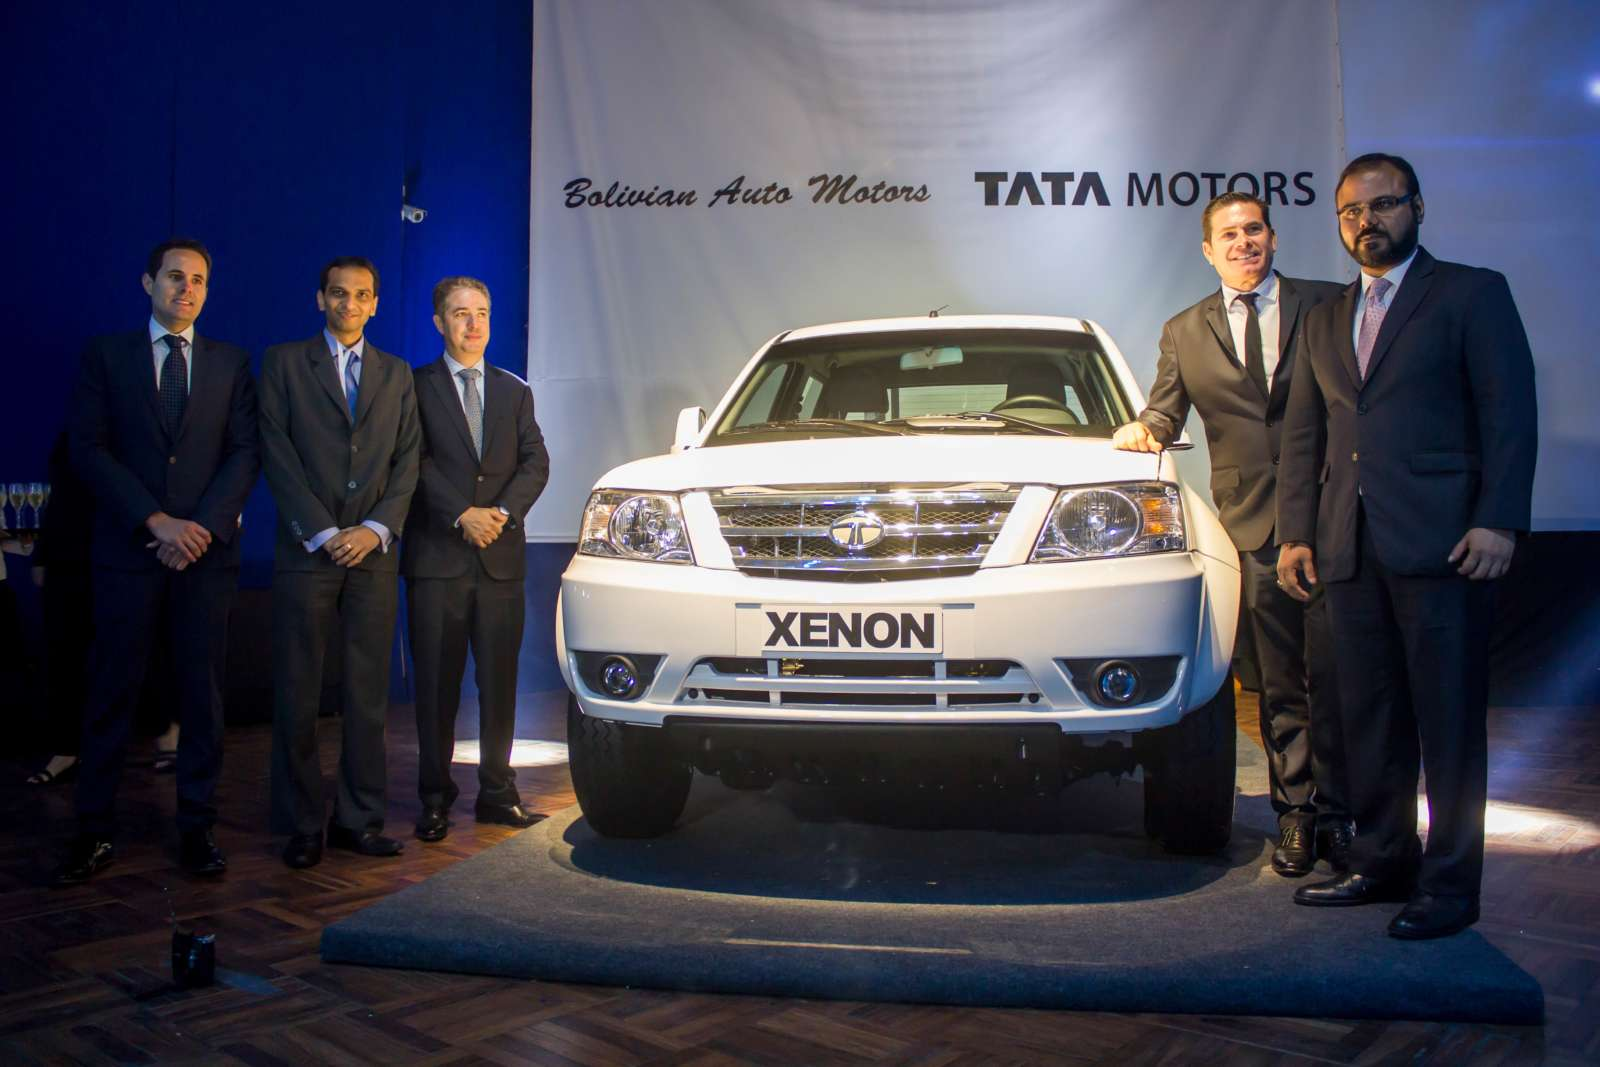 tata motors 2 essay The business role of tata motors commerce essay tata motors, the number 1 automobile company in india, holds a position of prestige also in the international market.